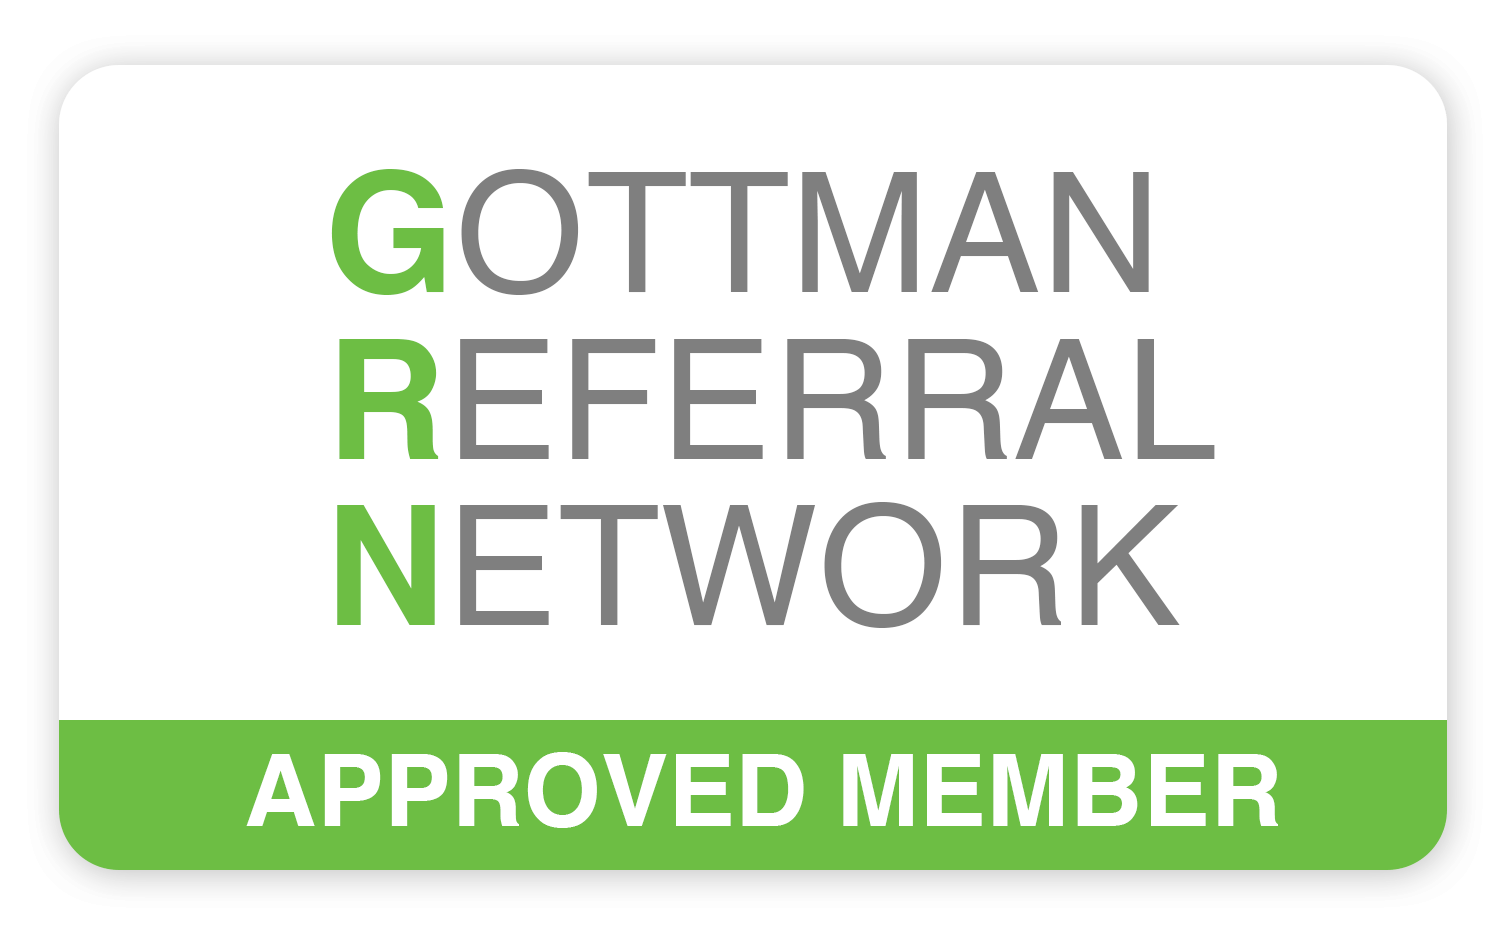 Tracy Henderson's profile on the Gottman Referral Network